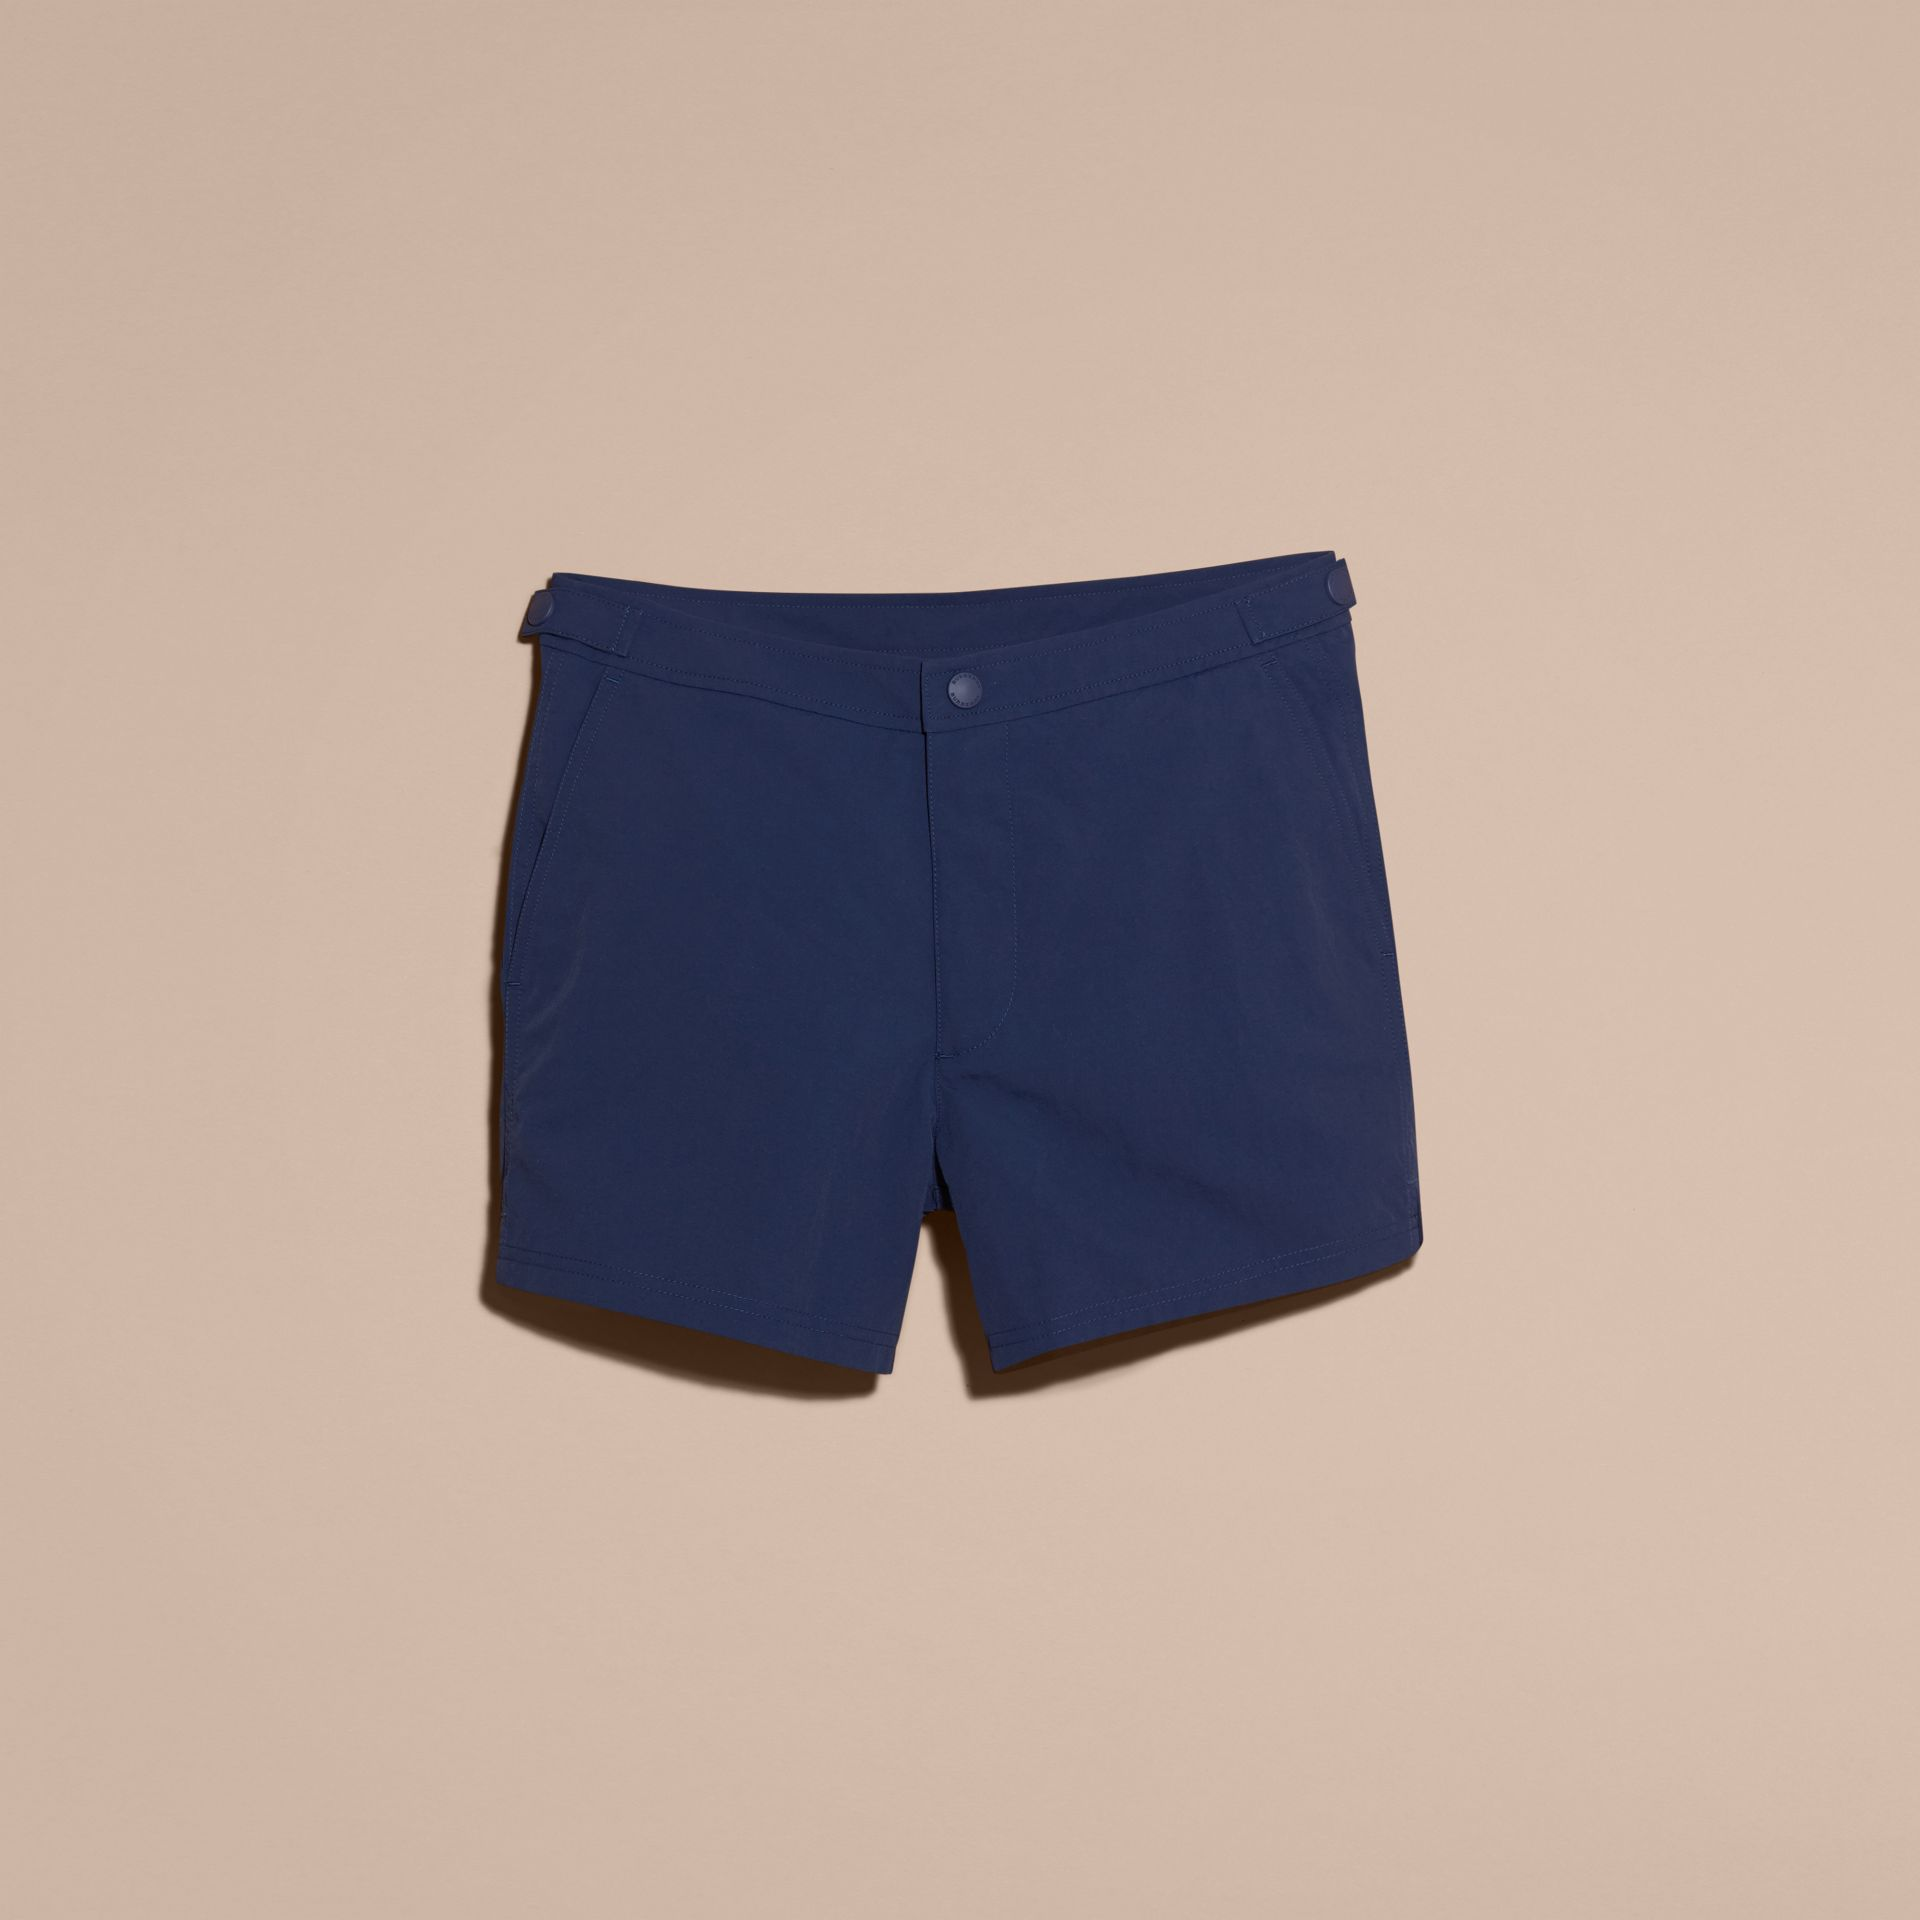 Tailored Swim Shorts in Bright Navy - Men | Burberry - gallery image 4